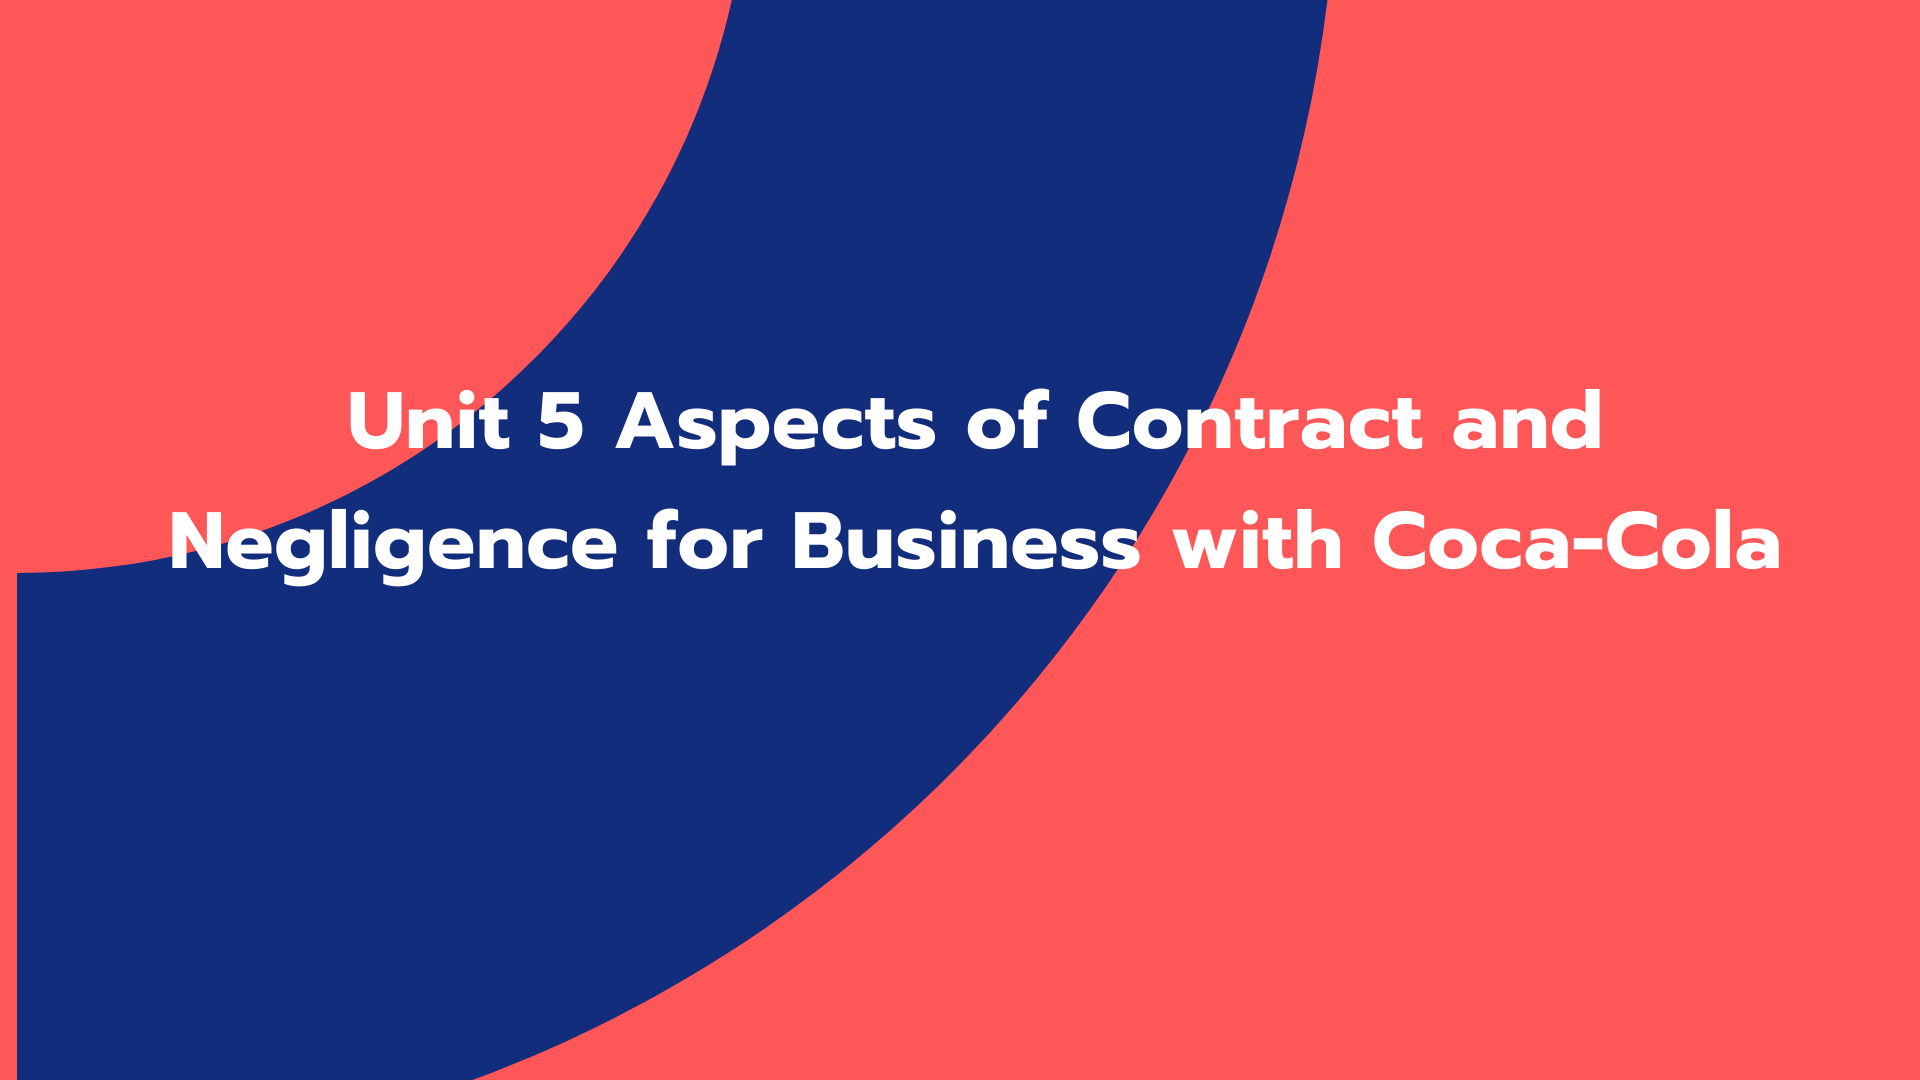 Unit 5 Aspects of Contract and Negligence for Business with Coca-Cola